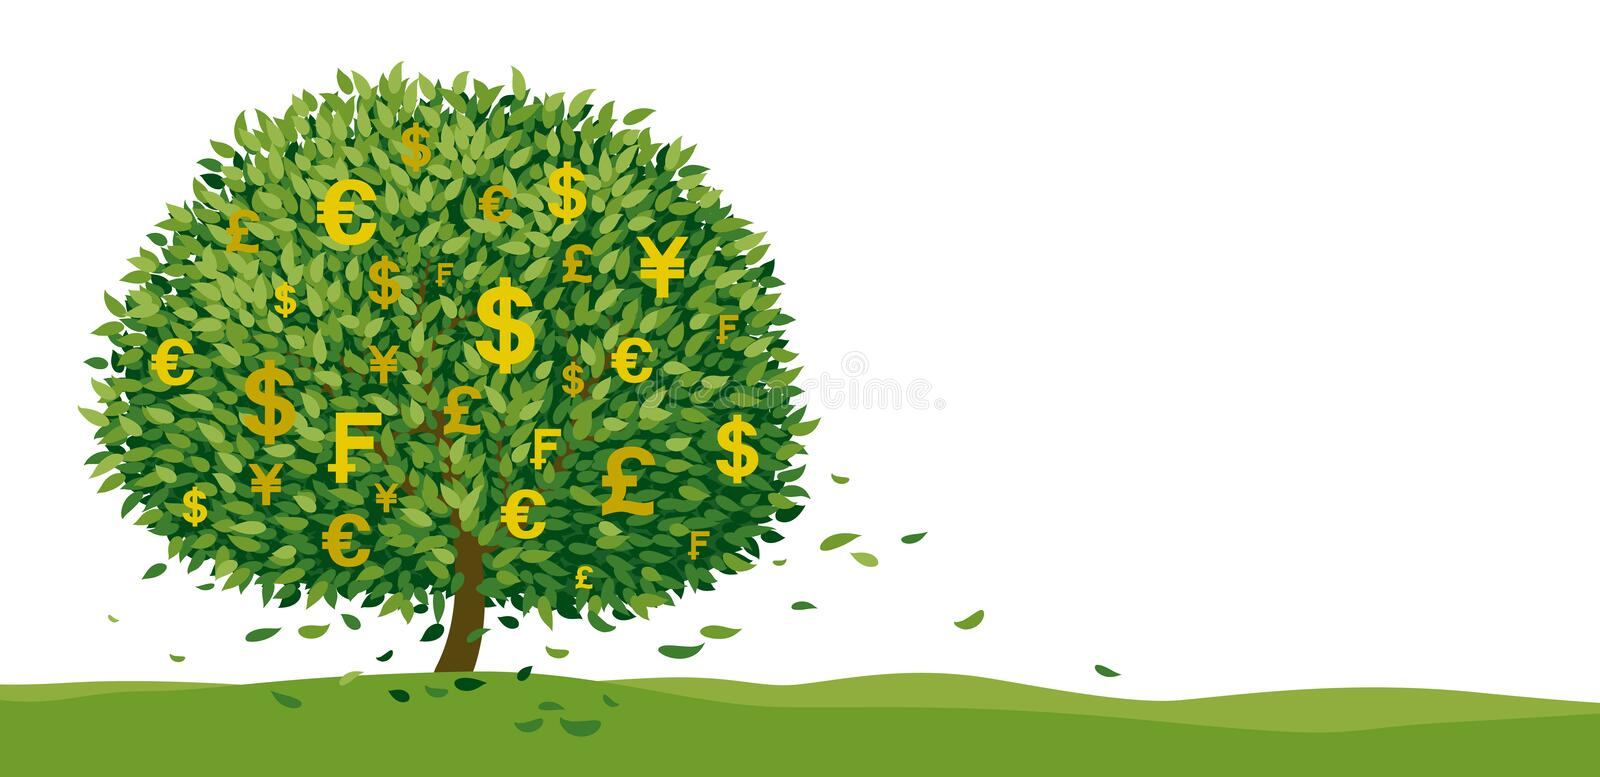 Money tree design on white background with copy space vector illustration stock illustration